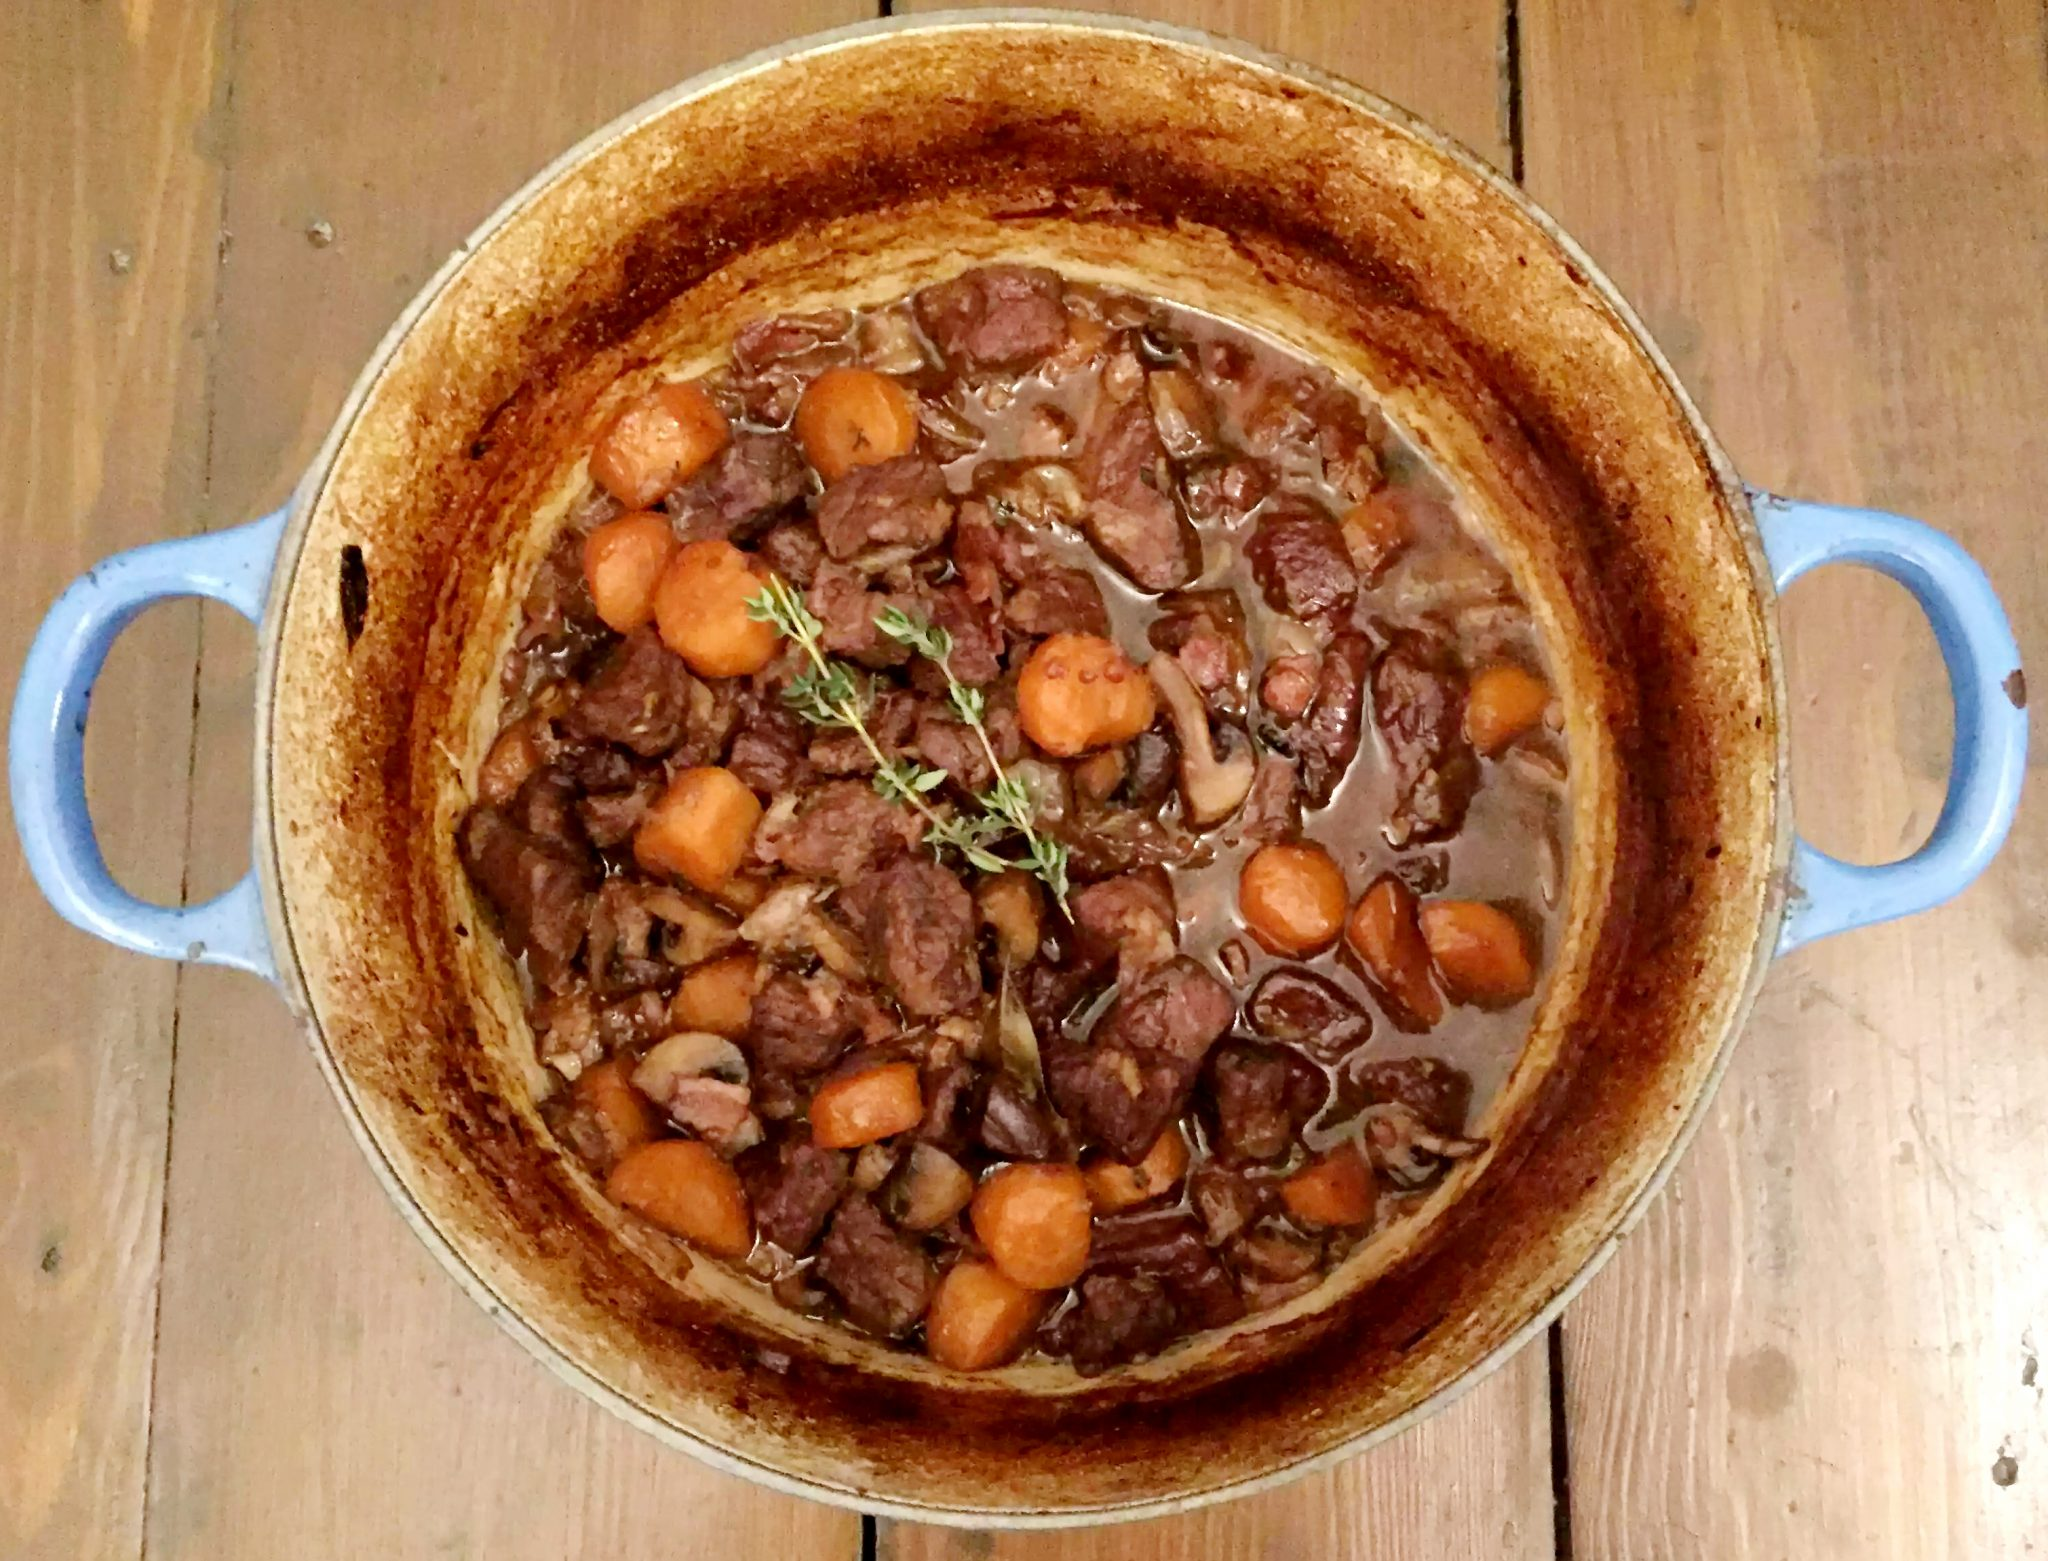 Boeuf Bourguignon by Emma Eats & Explores - SCD, Paleo, Grainfree, Glutenfree, Dairyfree, Sugarfree, Clean Eating